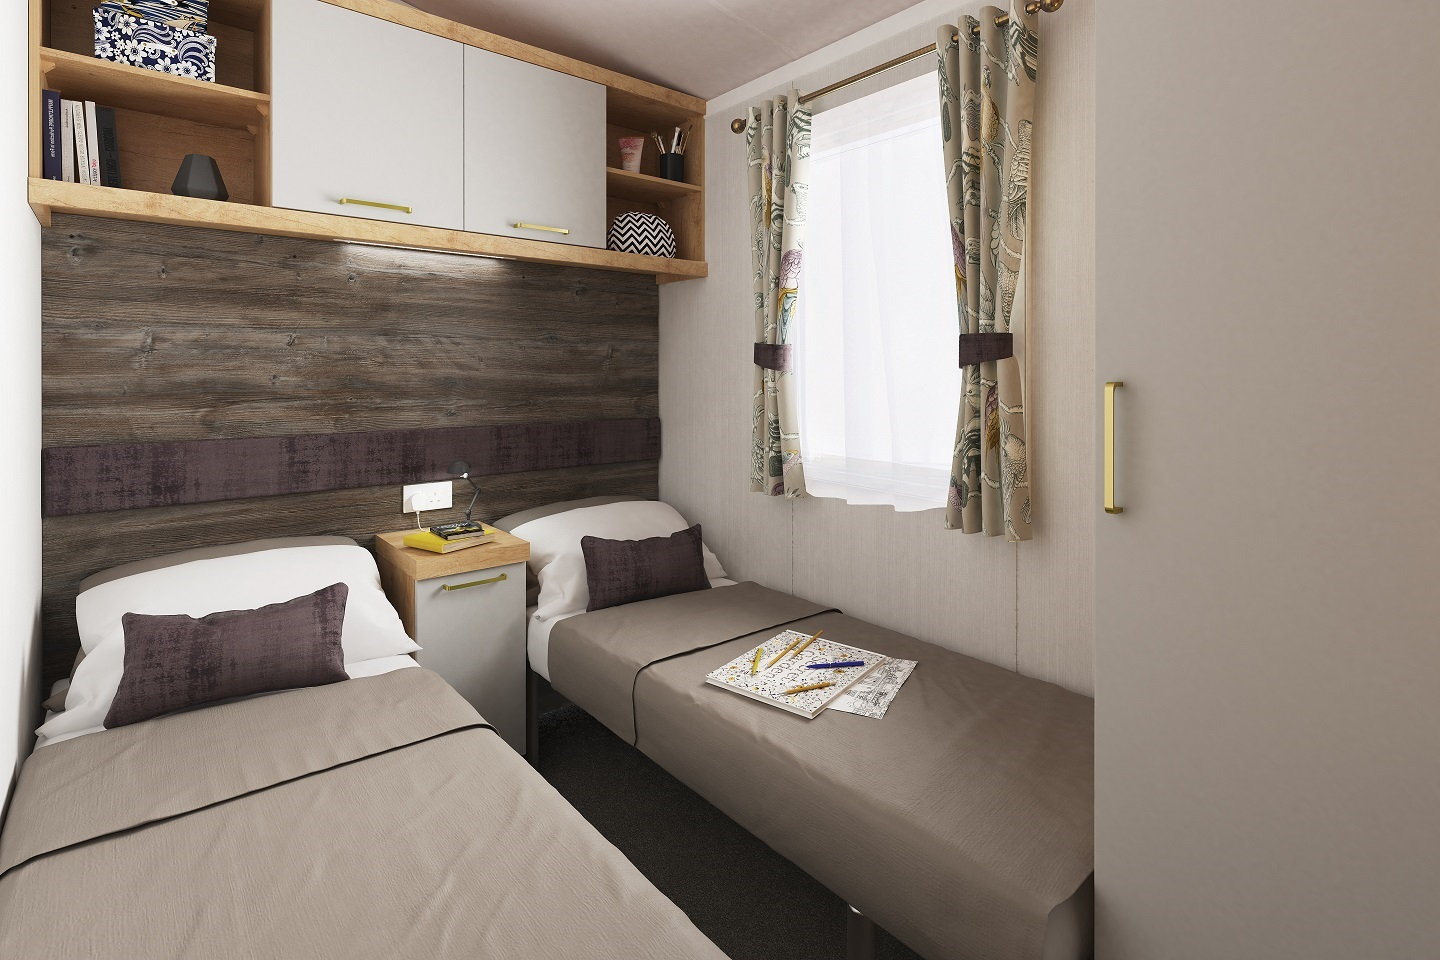 Swift Bordeaux: New Static Caravans and Holiday Homes for Sale, Available to Order Image 3